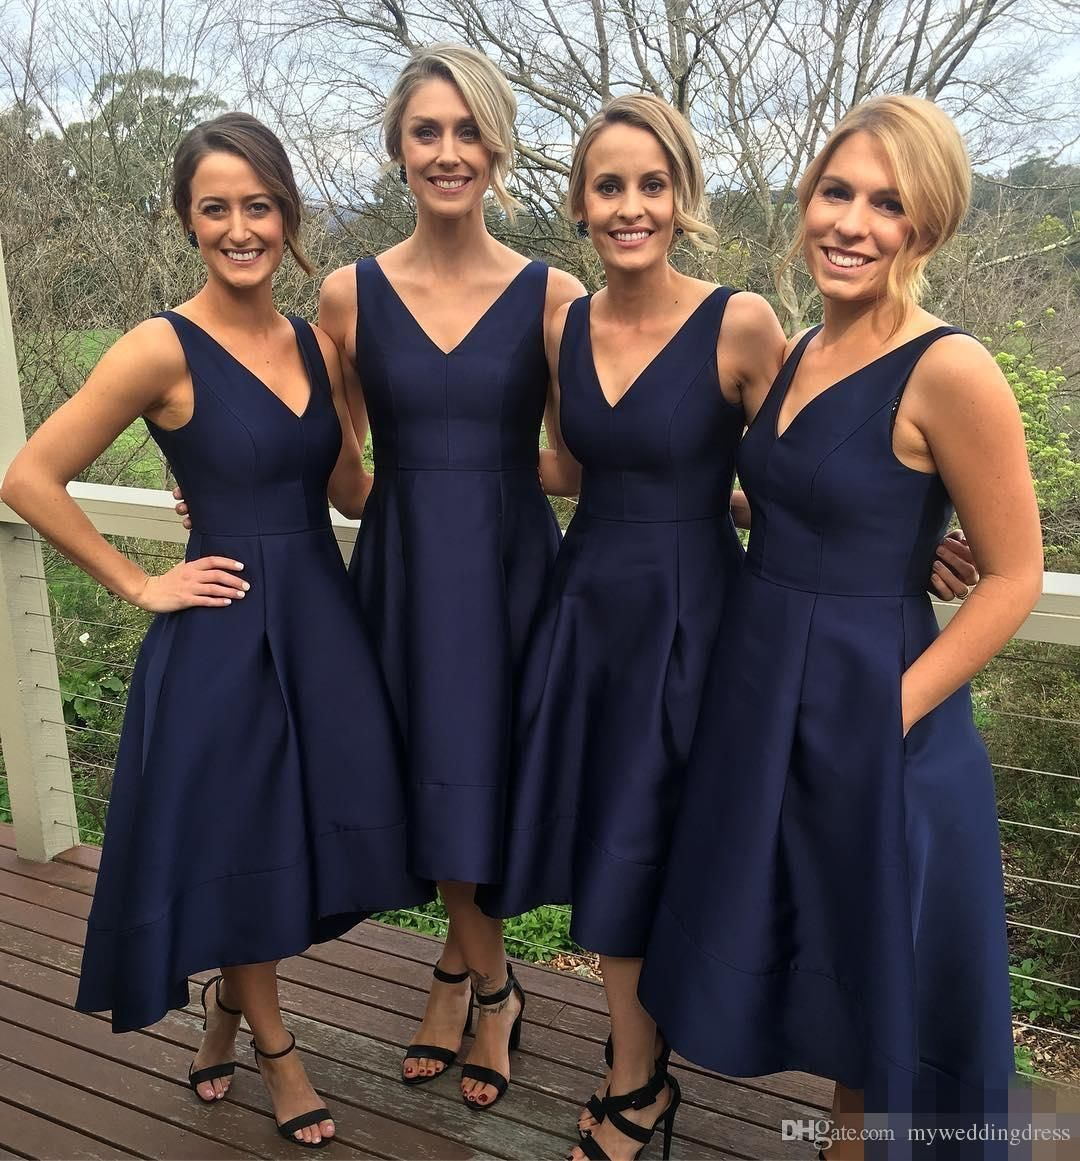 And ice silver bridesmaid dress if it was navy blue and ice silver - 2017 Garden Short High Low Bridesmaid Dresses With Pockets Navy Blue Cheap V Neck Pleats